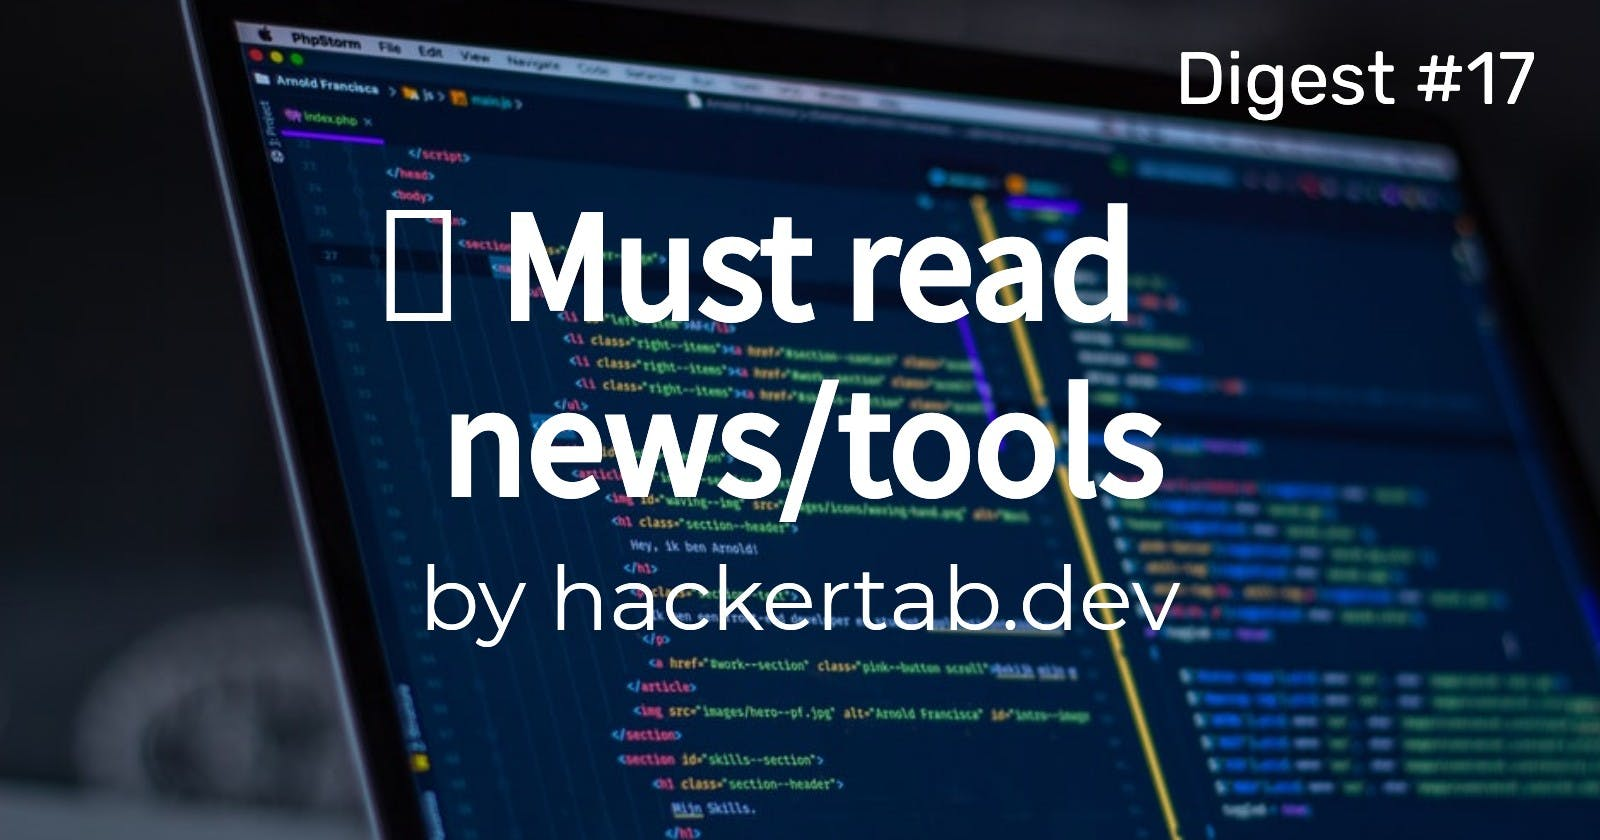 ⚡ Must read Tech news/tools of the day - Digest #17